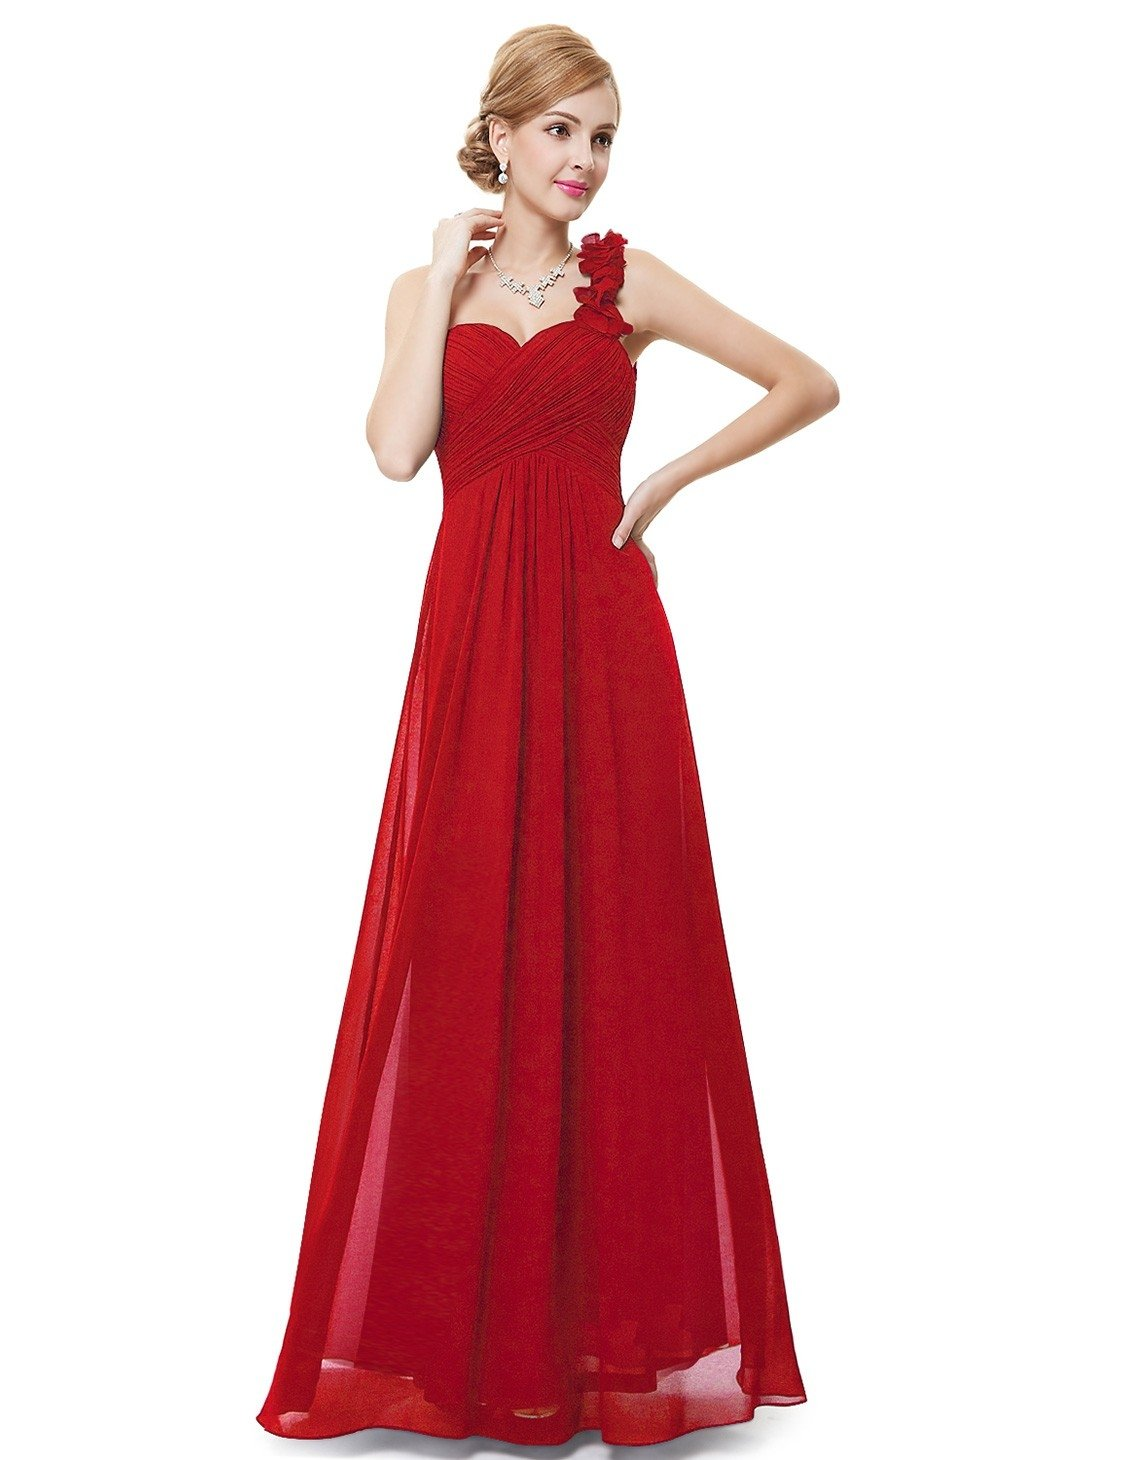 red-bridesmaid-dress-style-2